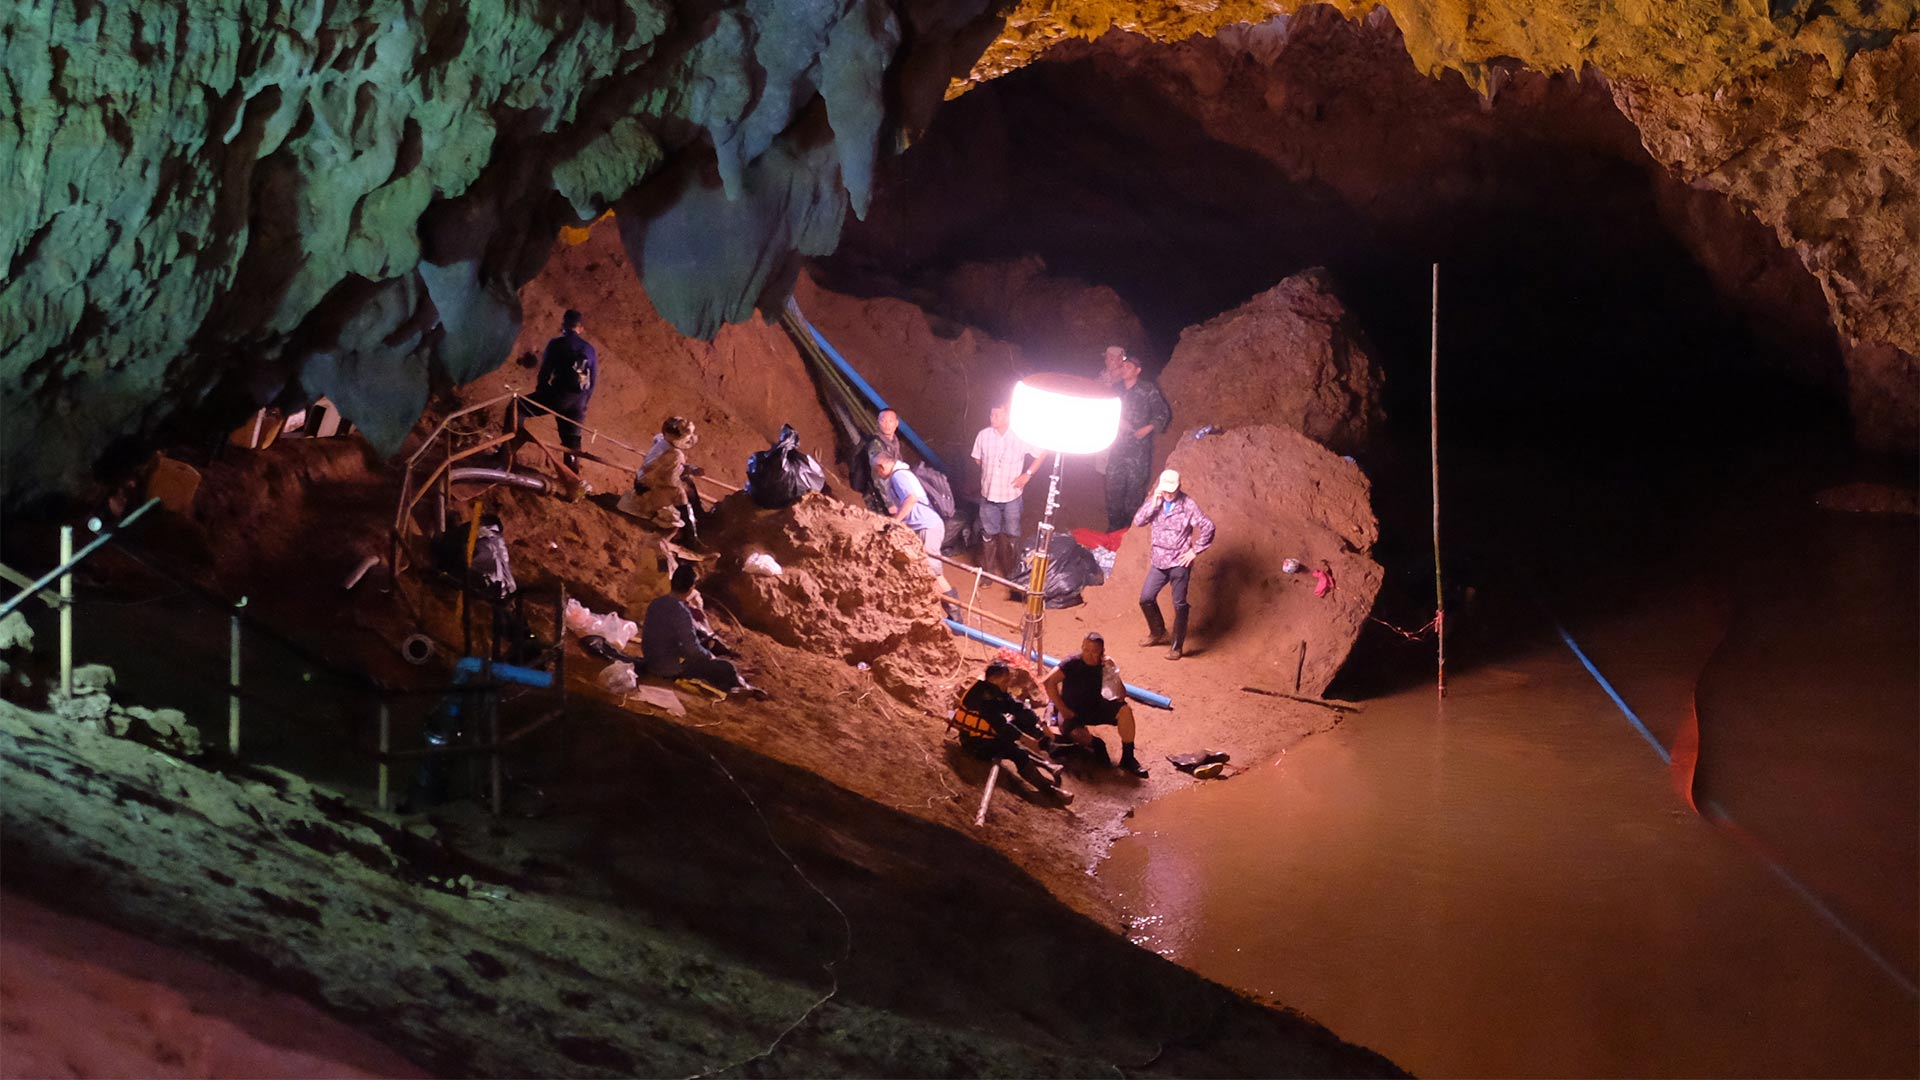 Thai officers supervise the rescue mission inside Tham Luang Nang Non cave on June 28, 2018 in Chiang Rai, Thailand.